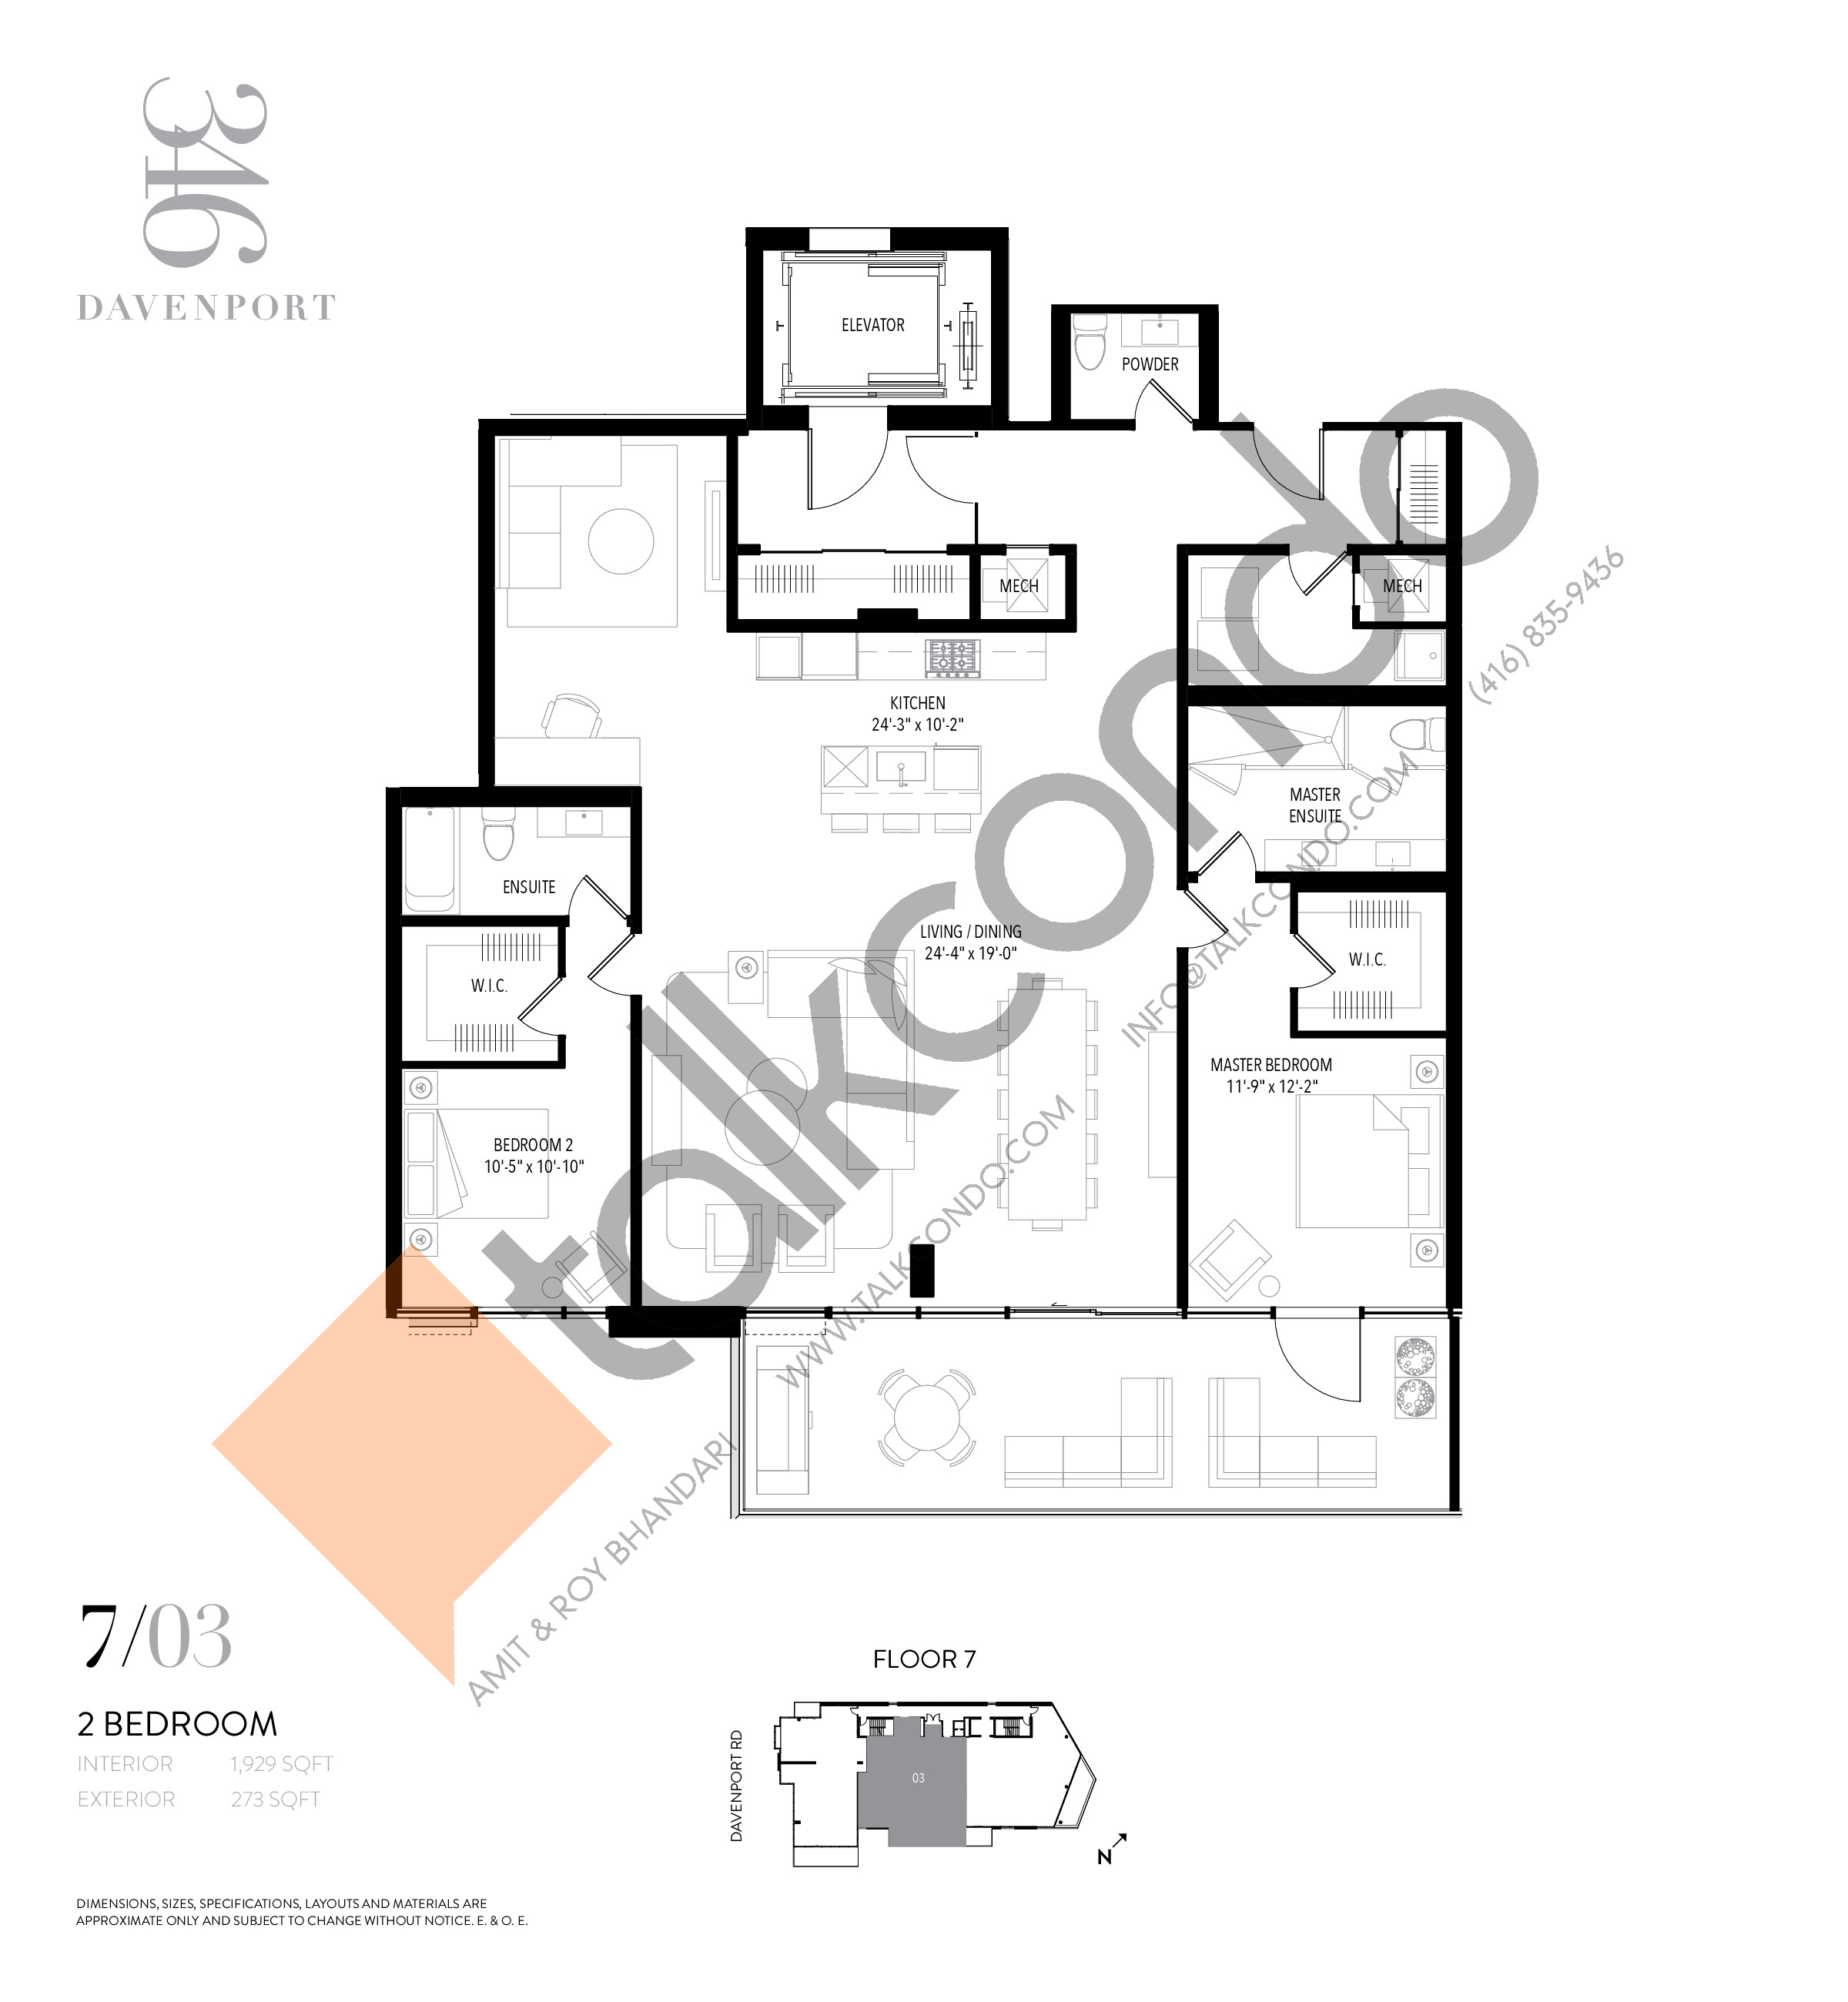 Unit 703 Floor Plan at 346 Davenport Condos - 1929 sq.ft